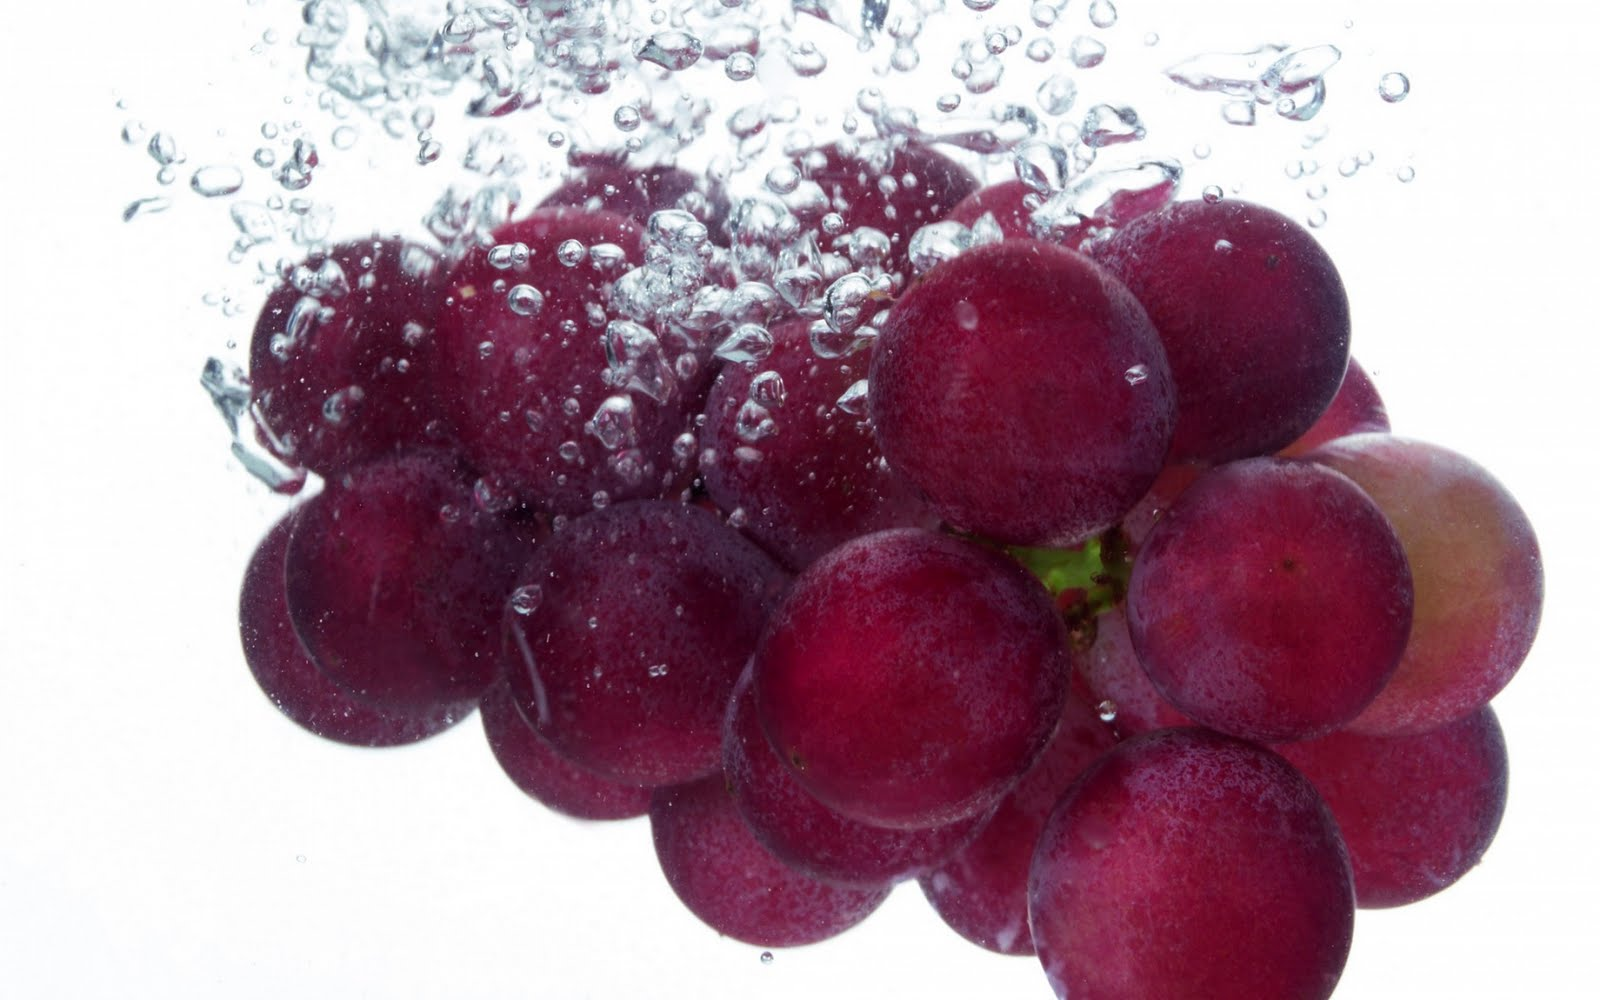 http://4.bp.blogspot.com/_KLJU3hHDGVM/TAyBXt0PewI/AAAAAAAACPQ/fVlPEi3res4/s1600/fresh_Grapes_in_water_bubbles.jpg